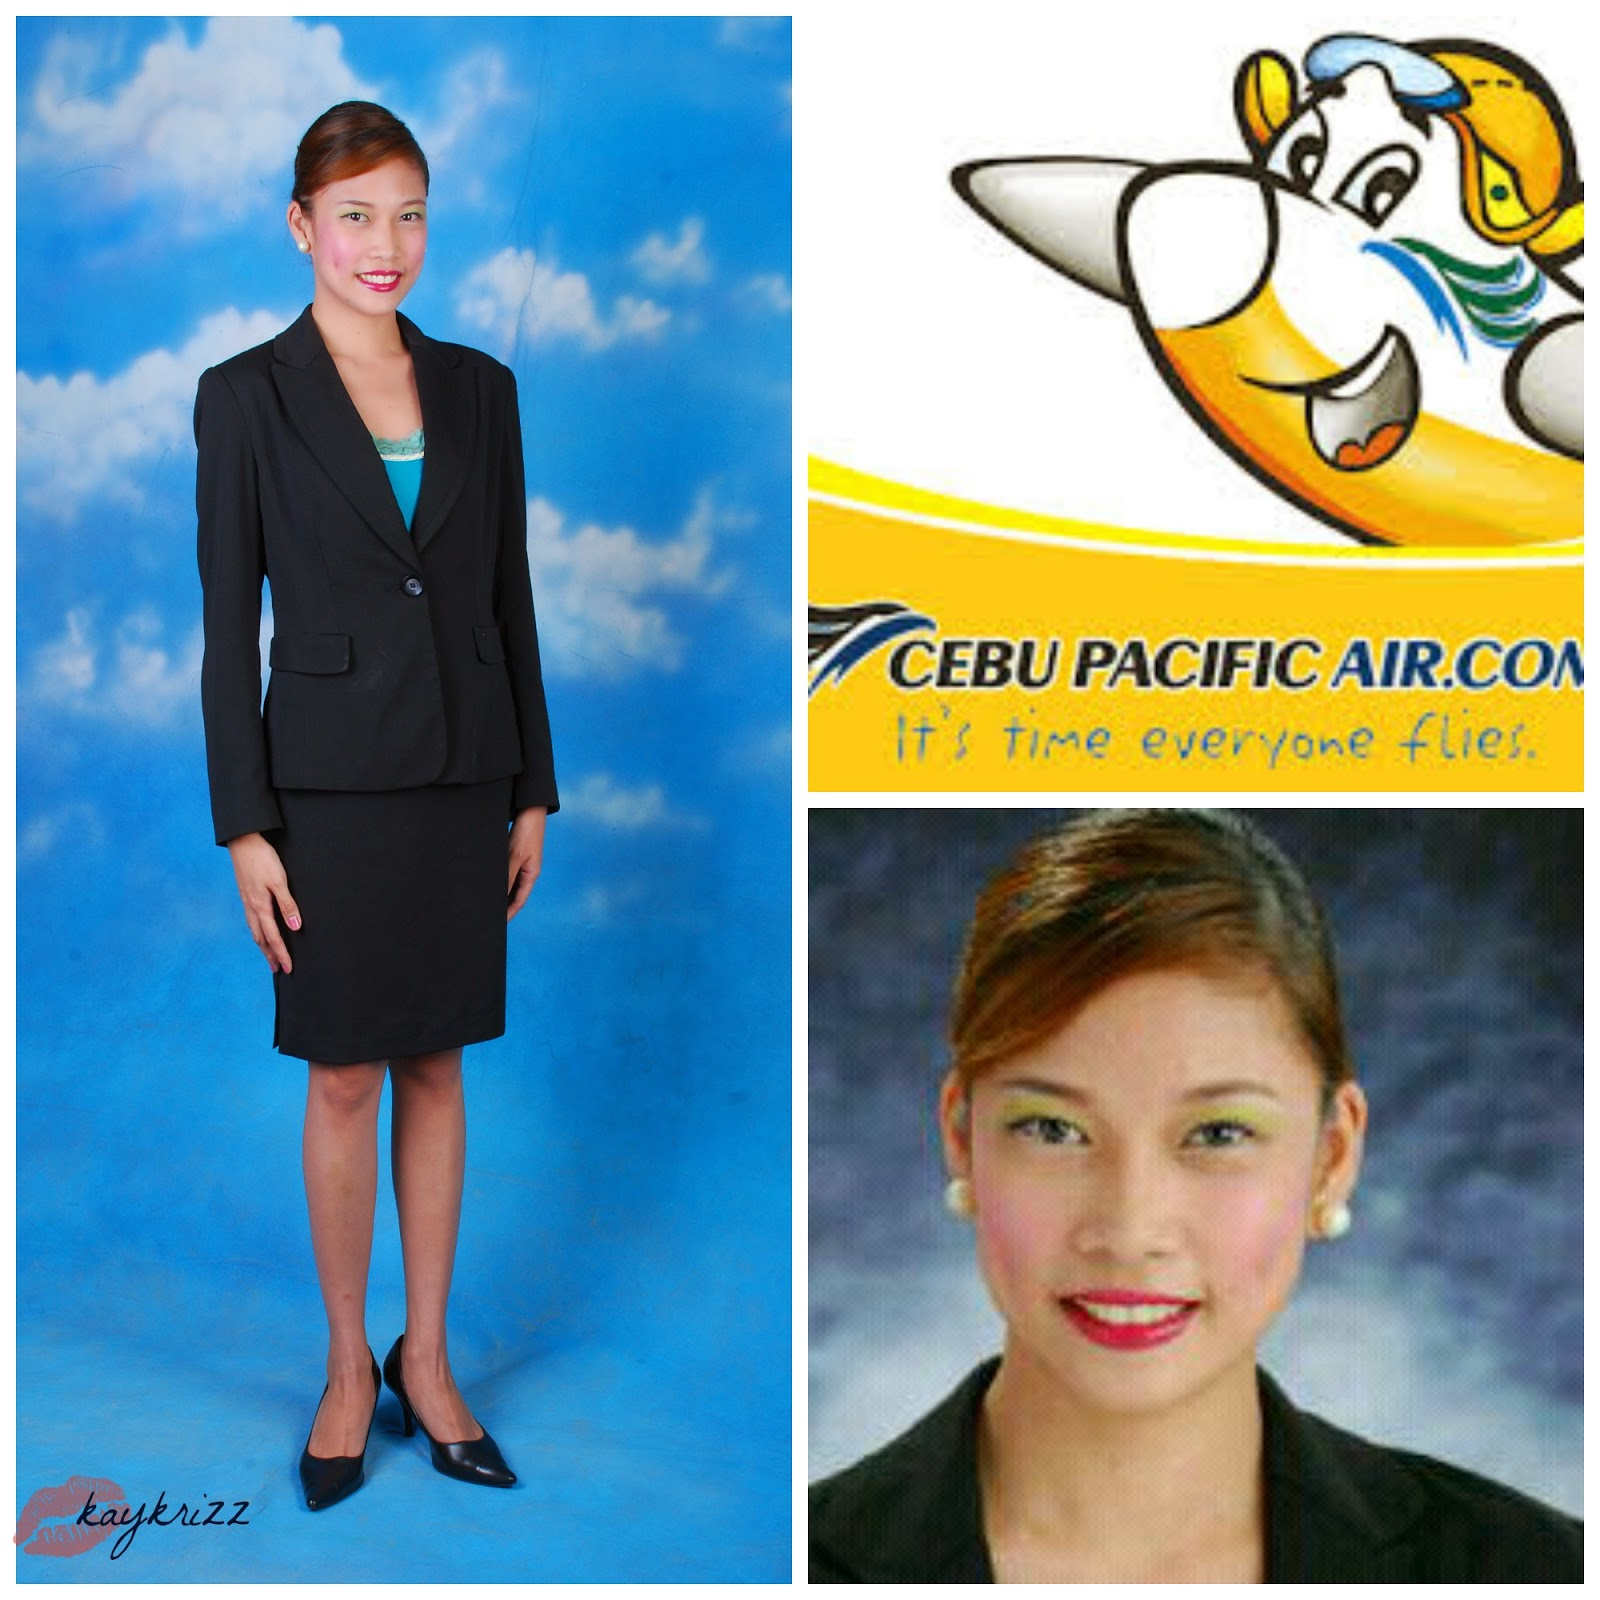 cebu pacific air recruitment experience one day hiring process miss kaykrizz. Black Bedroom Furniture Sets. Home Design Ideas